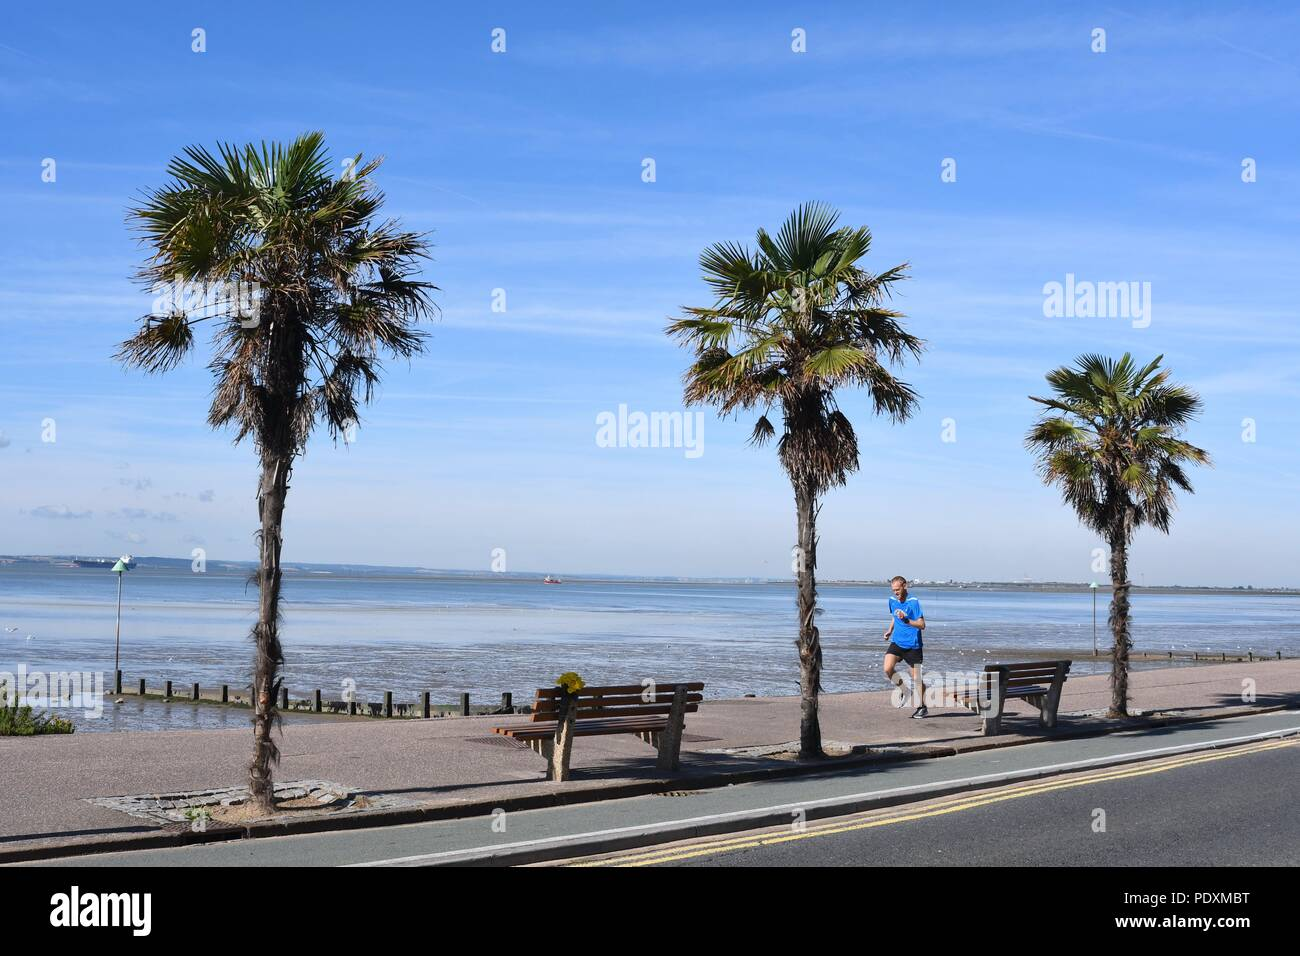 Southend On Sea Es Uk 11th August 2018 Uk Weather A Warm Start To The Day In Southend A View Of A Man Jogging Along The Sea Front Credit Ben